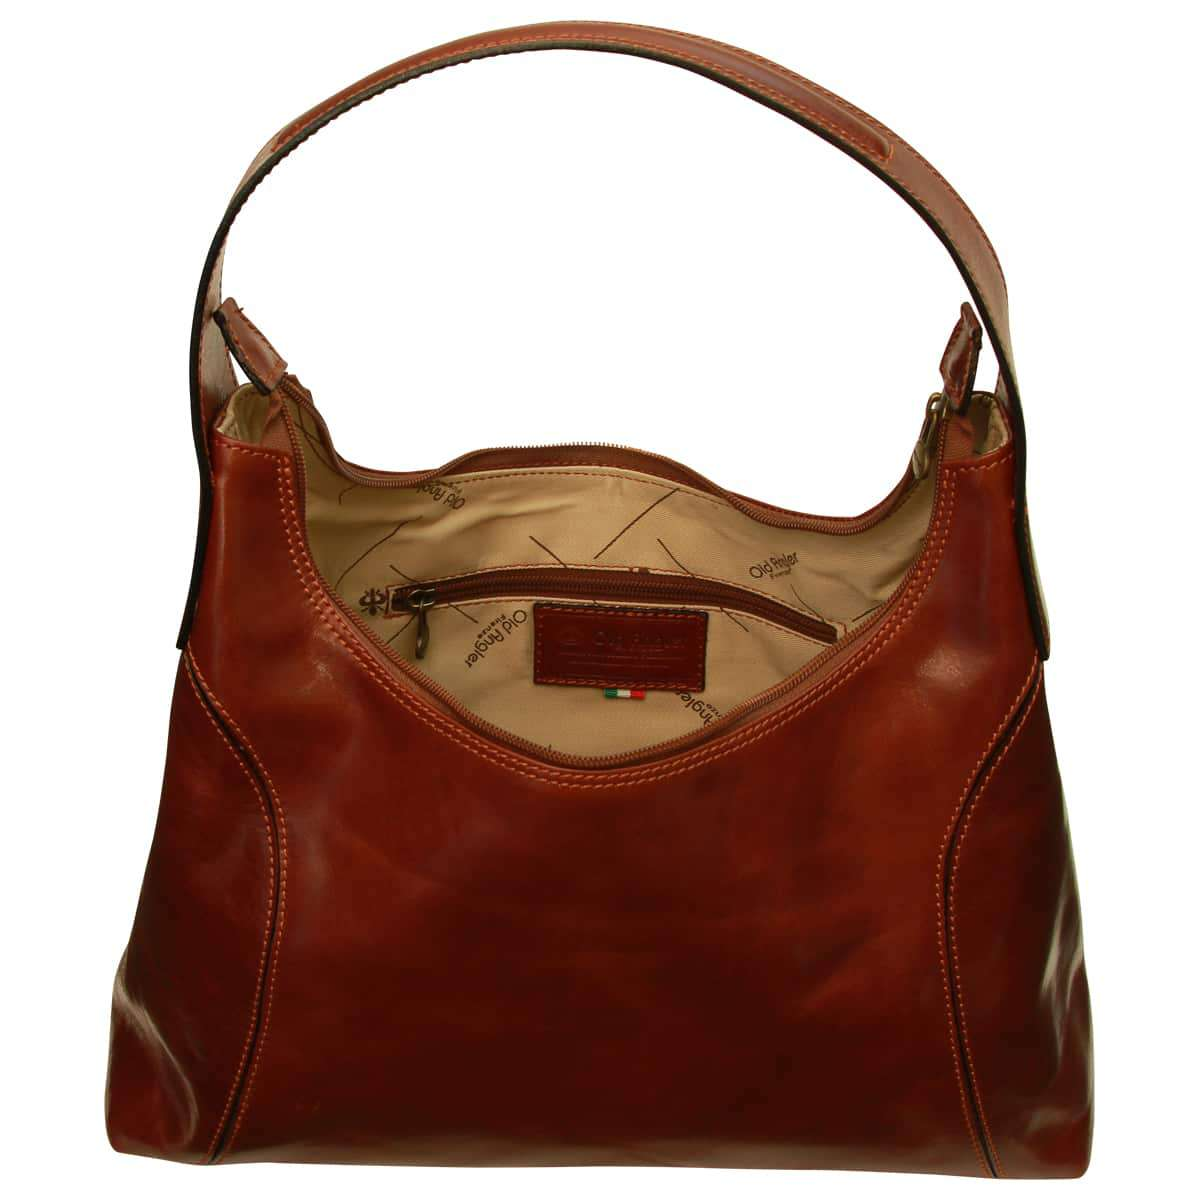 Women's leather shoulder bag - Brown | 069105MA UK | Old Angler Firenze